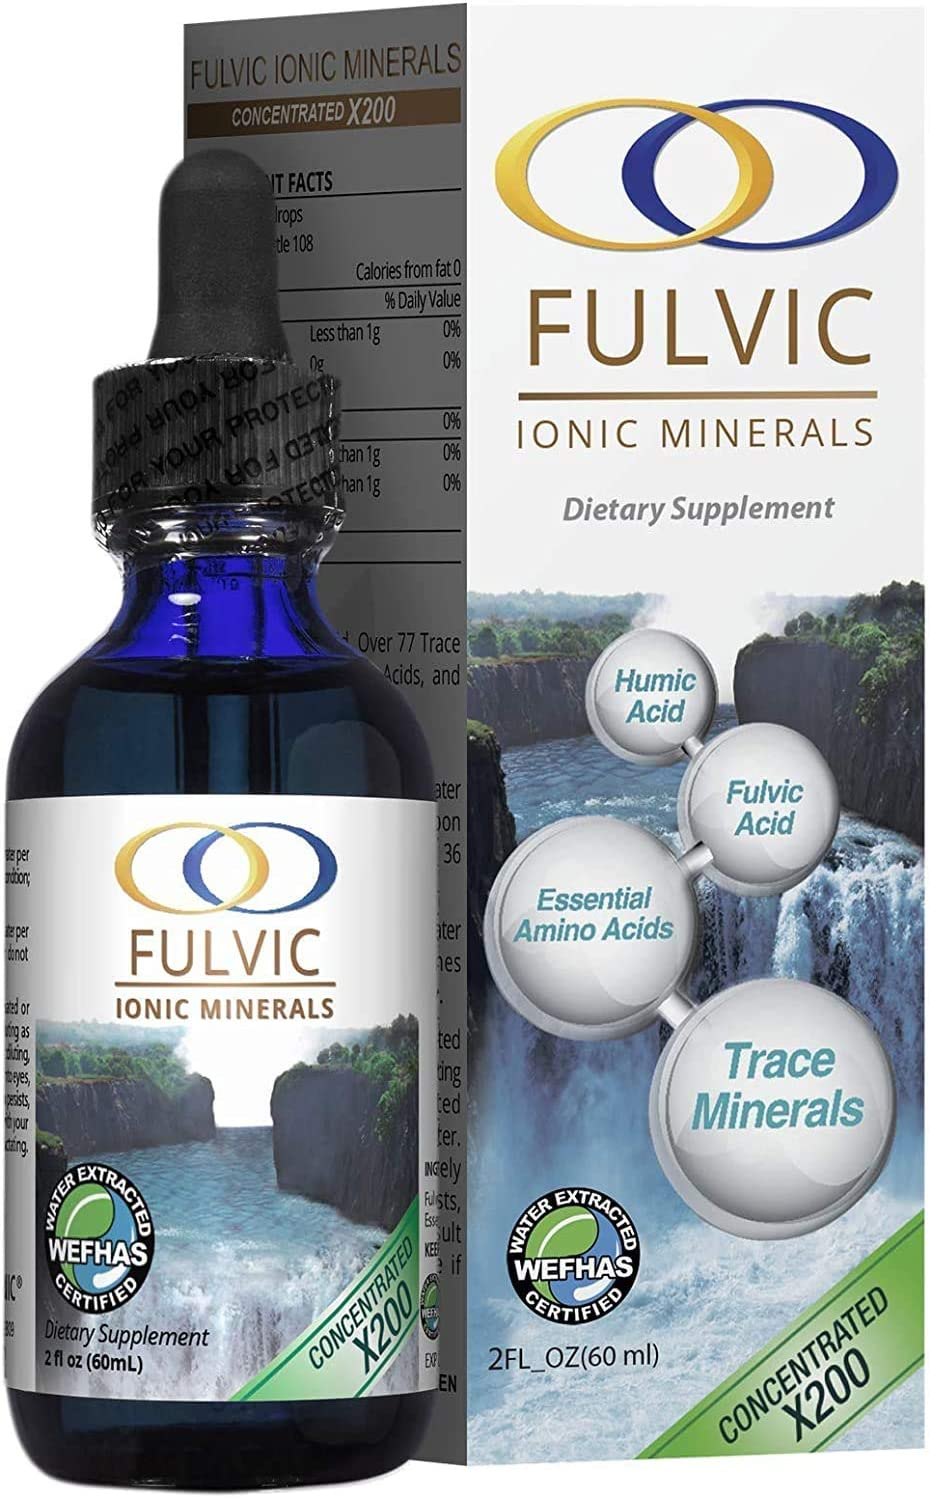 Water Extracted Fulvic Acid Max 90% OFF X200 Max 59% OFF Based Ionic Trace Minera -Plant